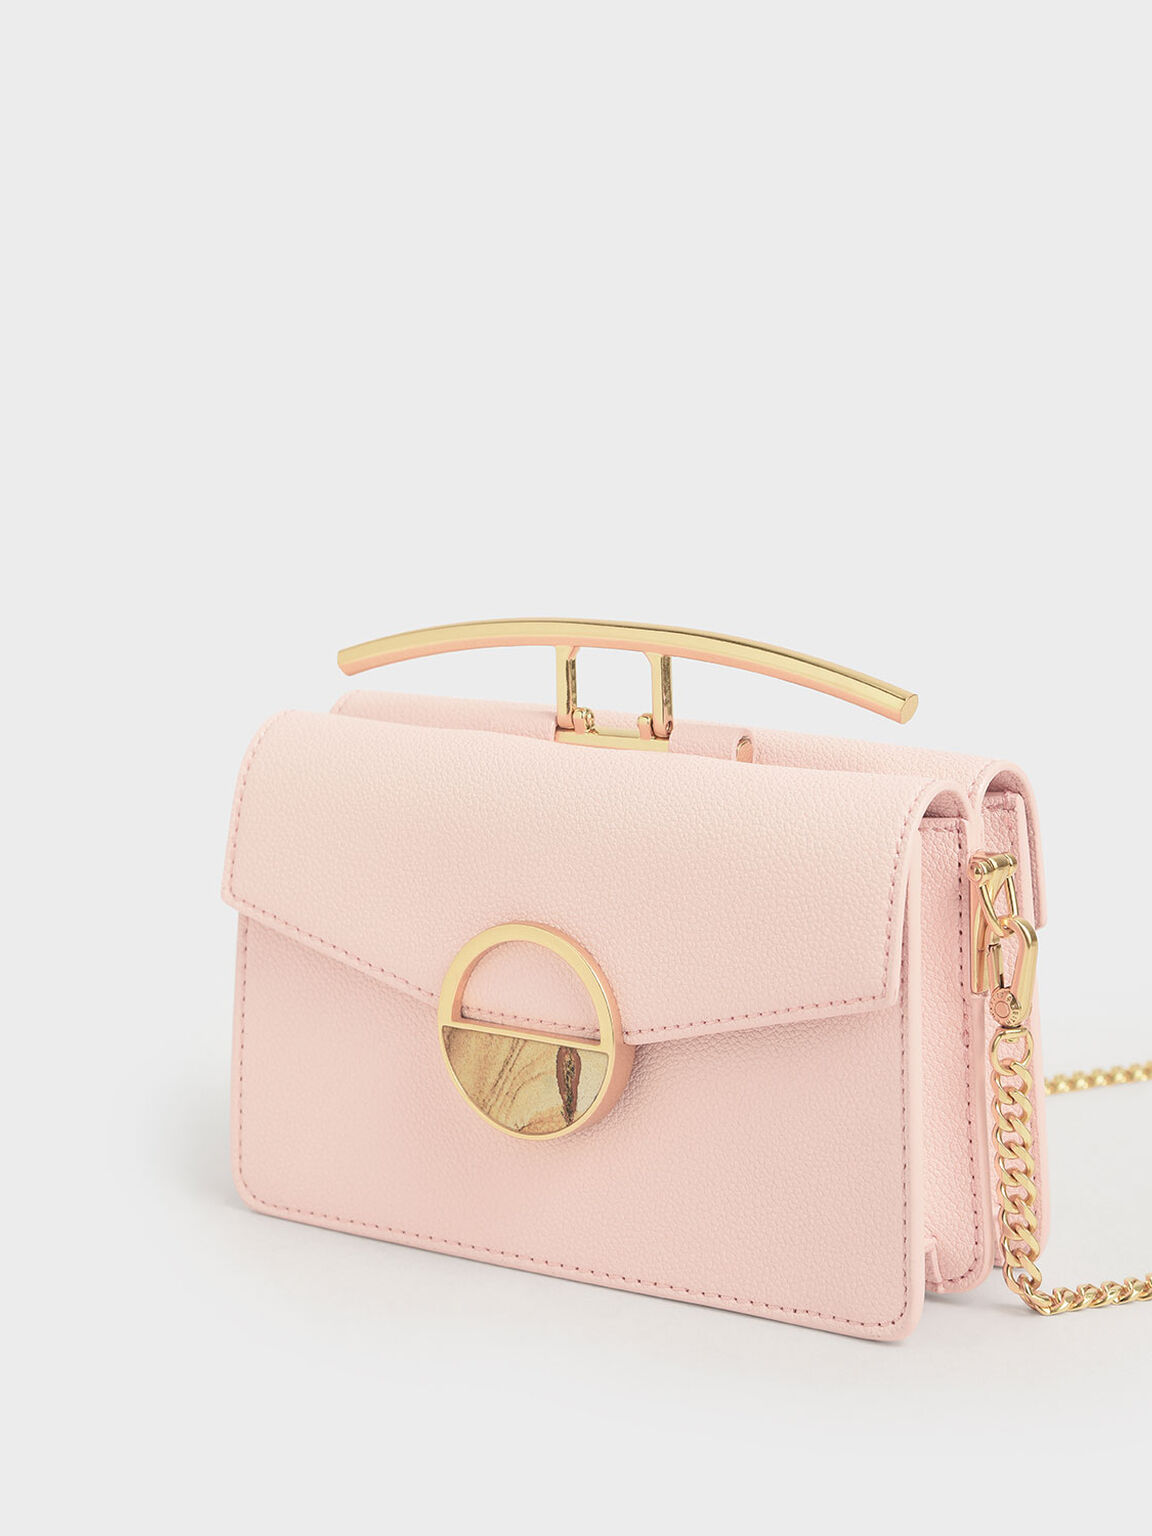 Stone Embellished-Buckle Shoulder Bag, Light Pink, hi-res